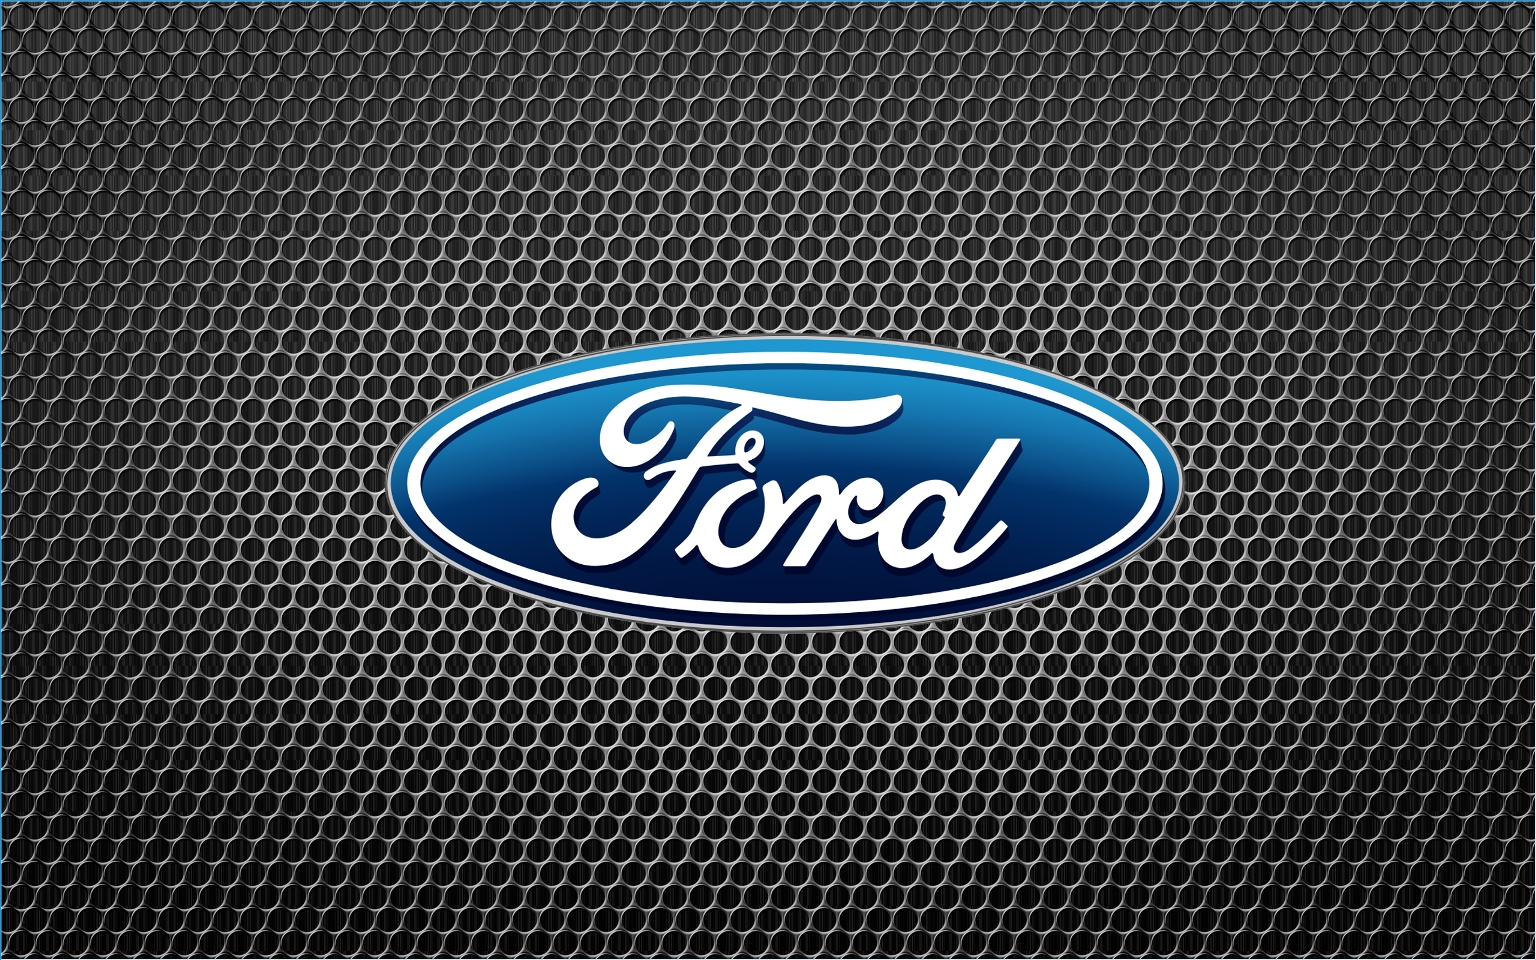 3d Animated Wallpapers And Screensavers Full Version Free Download Le Logo Ford Les Marques De Voitures